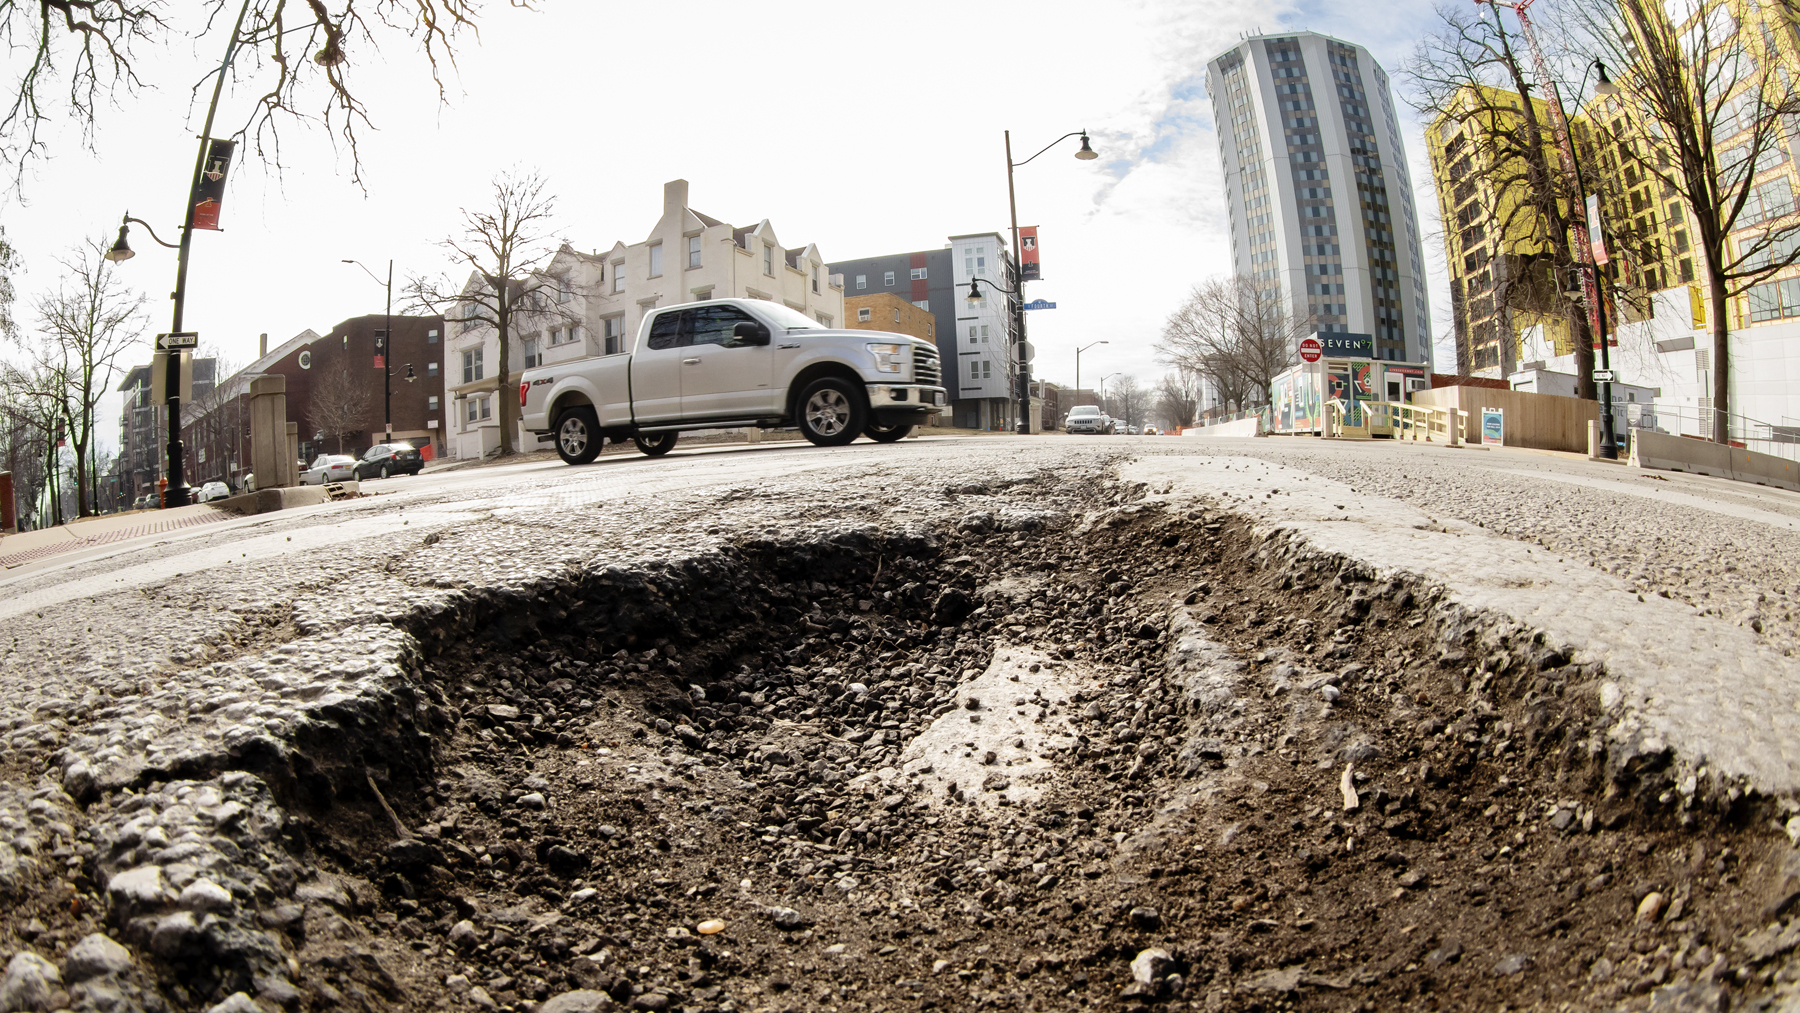 Pothole on the campus of University of Illinois at Urbana-Champaign. Photo by L. Brian Stauffer